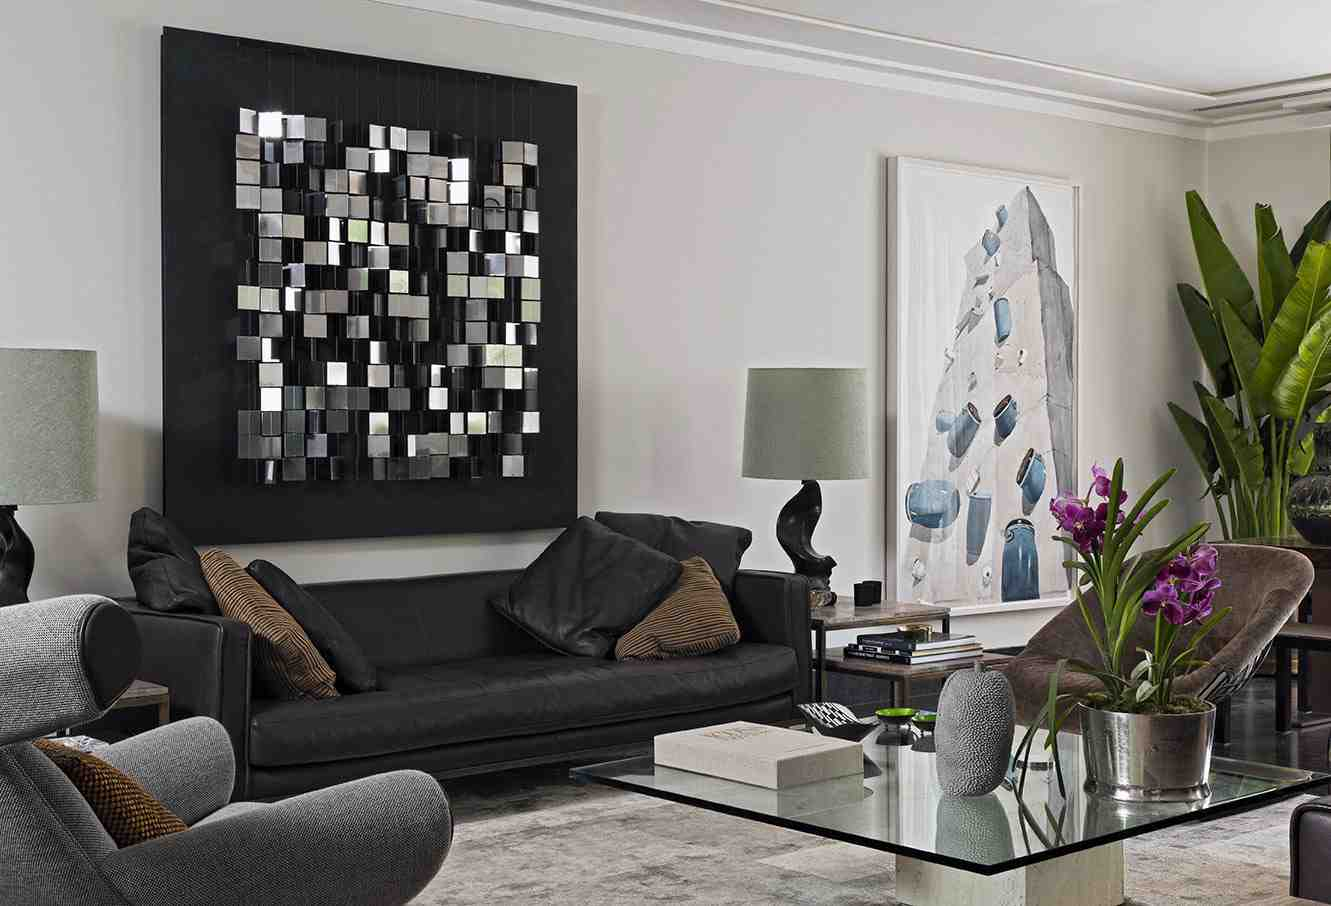 Wall Art Decor Apartment : Living room wall decor options ideasdecor ideas